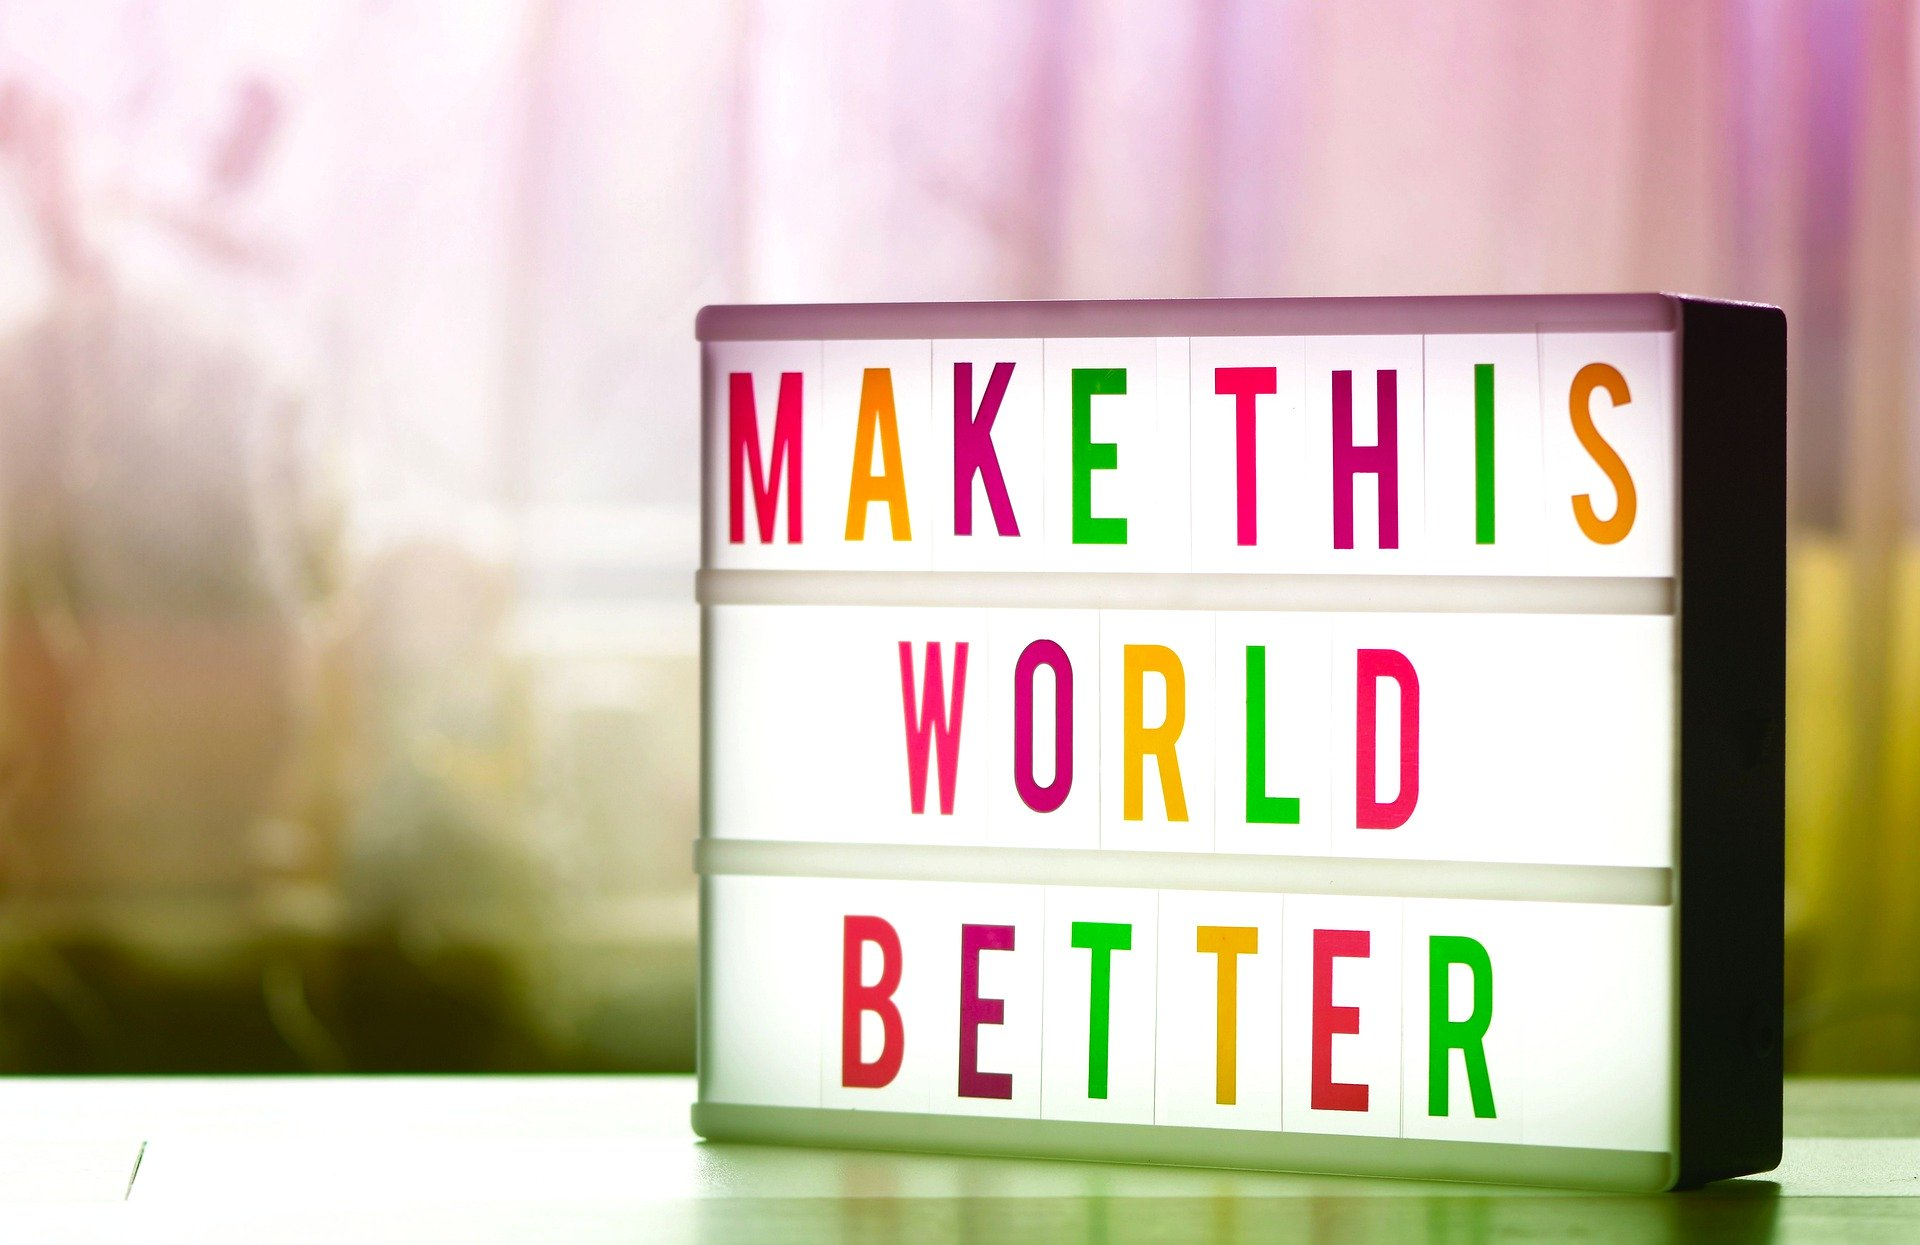 Charity - Make This World Better